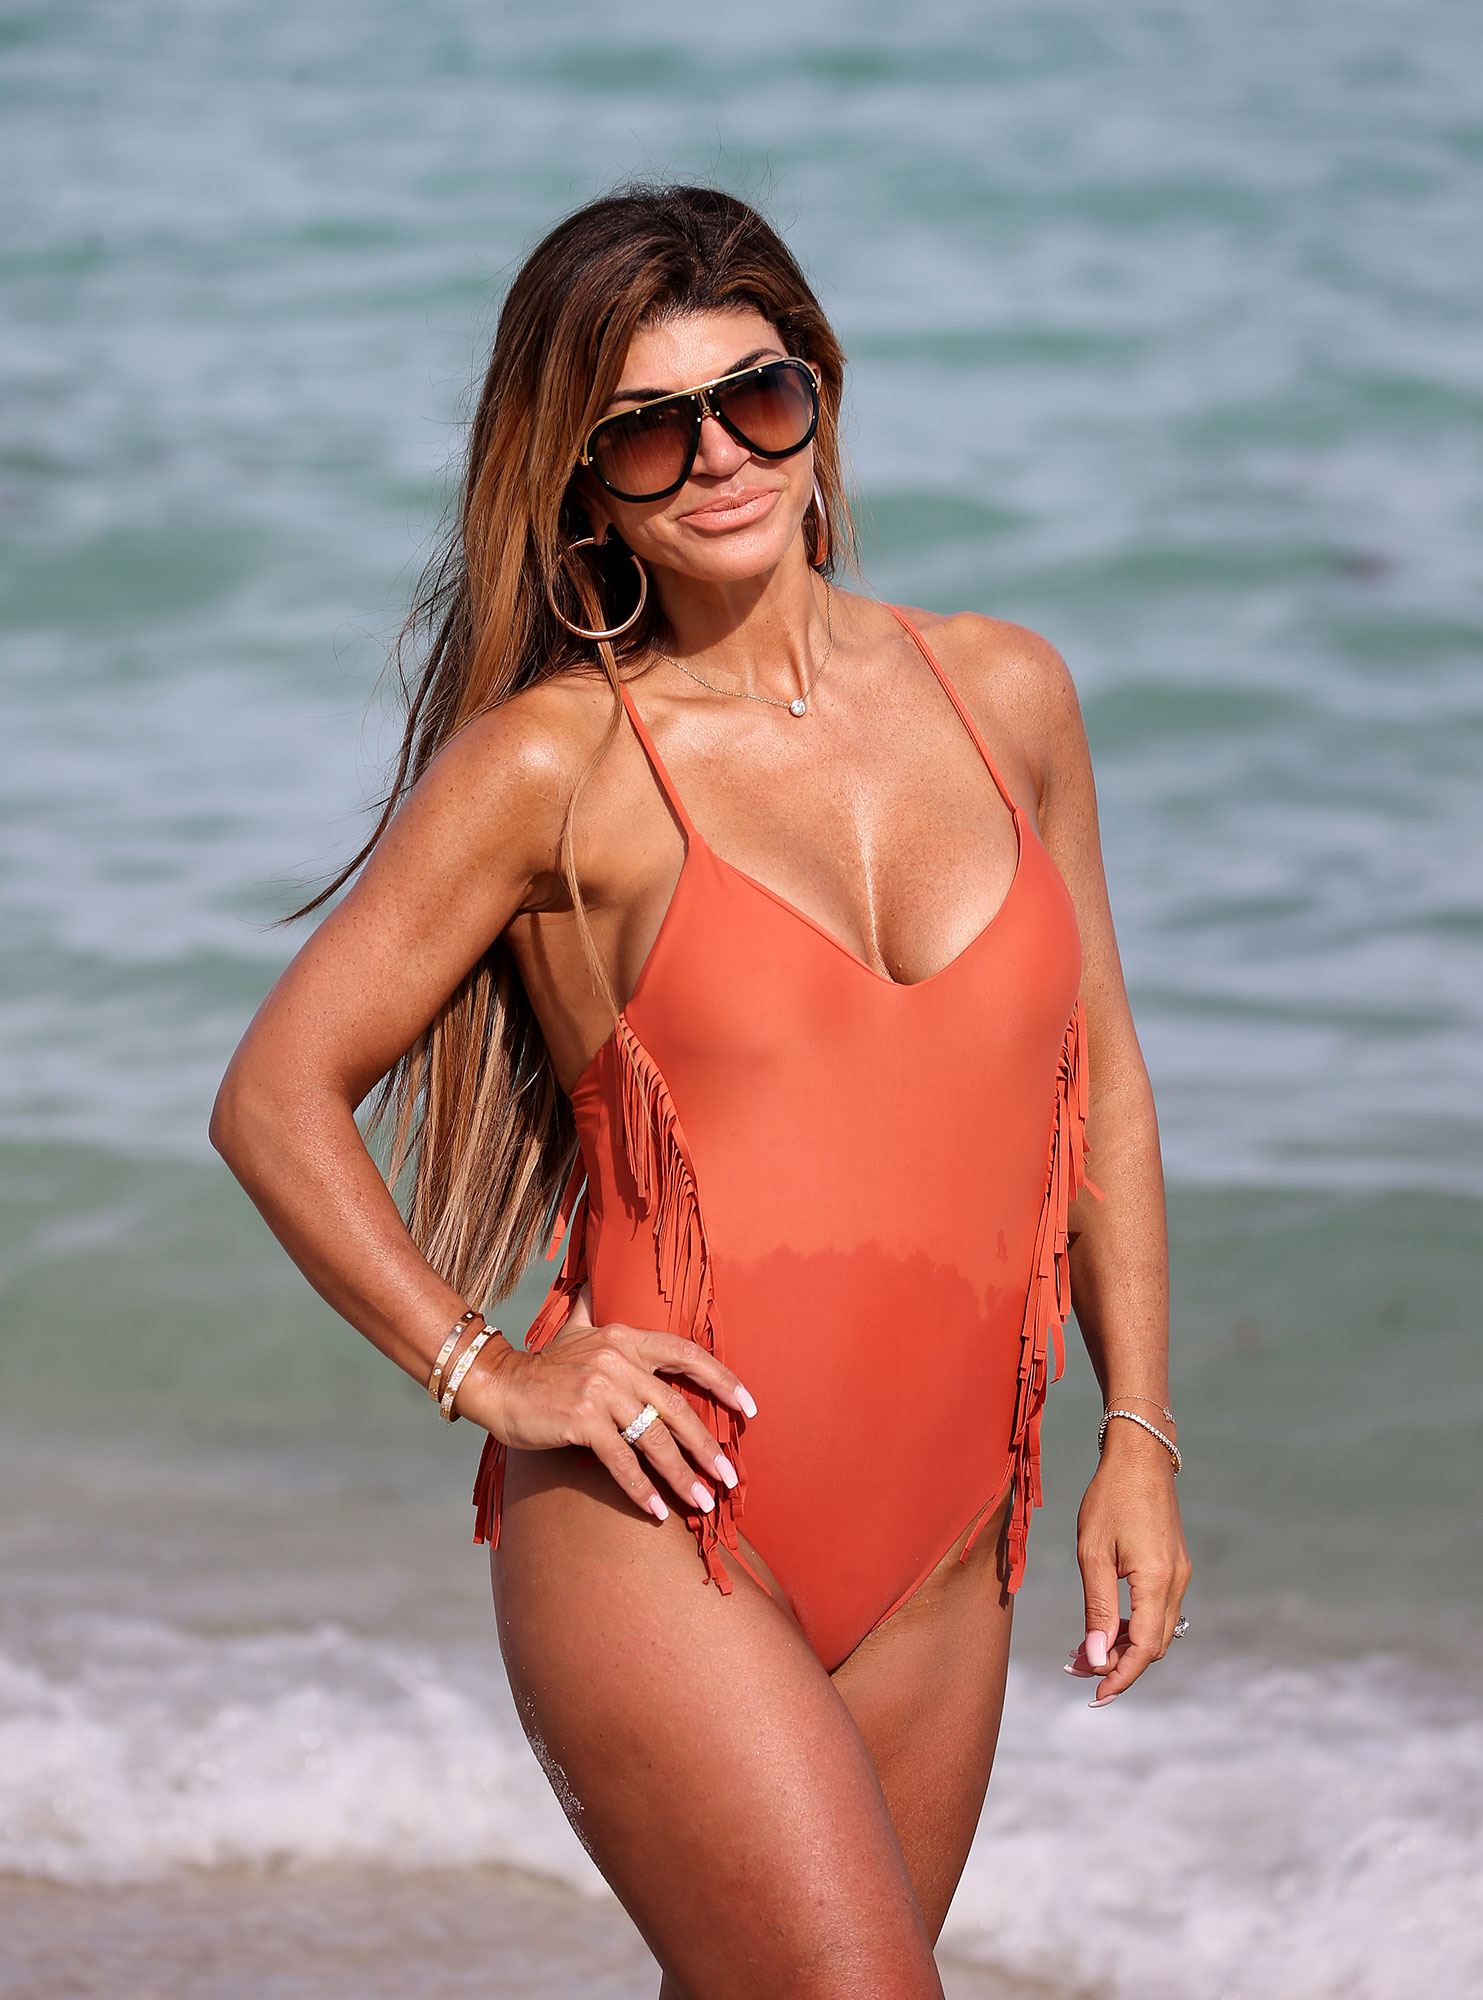 Teresa Giudice Looks Carefree in Swimsuit on the Beach Amid Joe Giudice Drama - * PREMIUM EXCLUSIVE* Real Housewives of New Jersey star Teresa Giudice looks amazing in a peach swimsuit as she takes a walk along the beach in Miami. 15 Feb 2019 Pictured: Teresa Giudice.